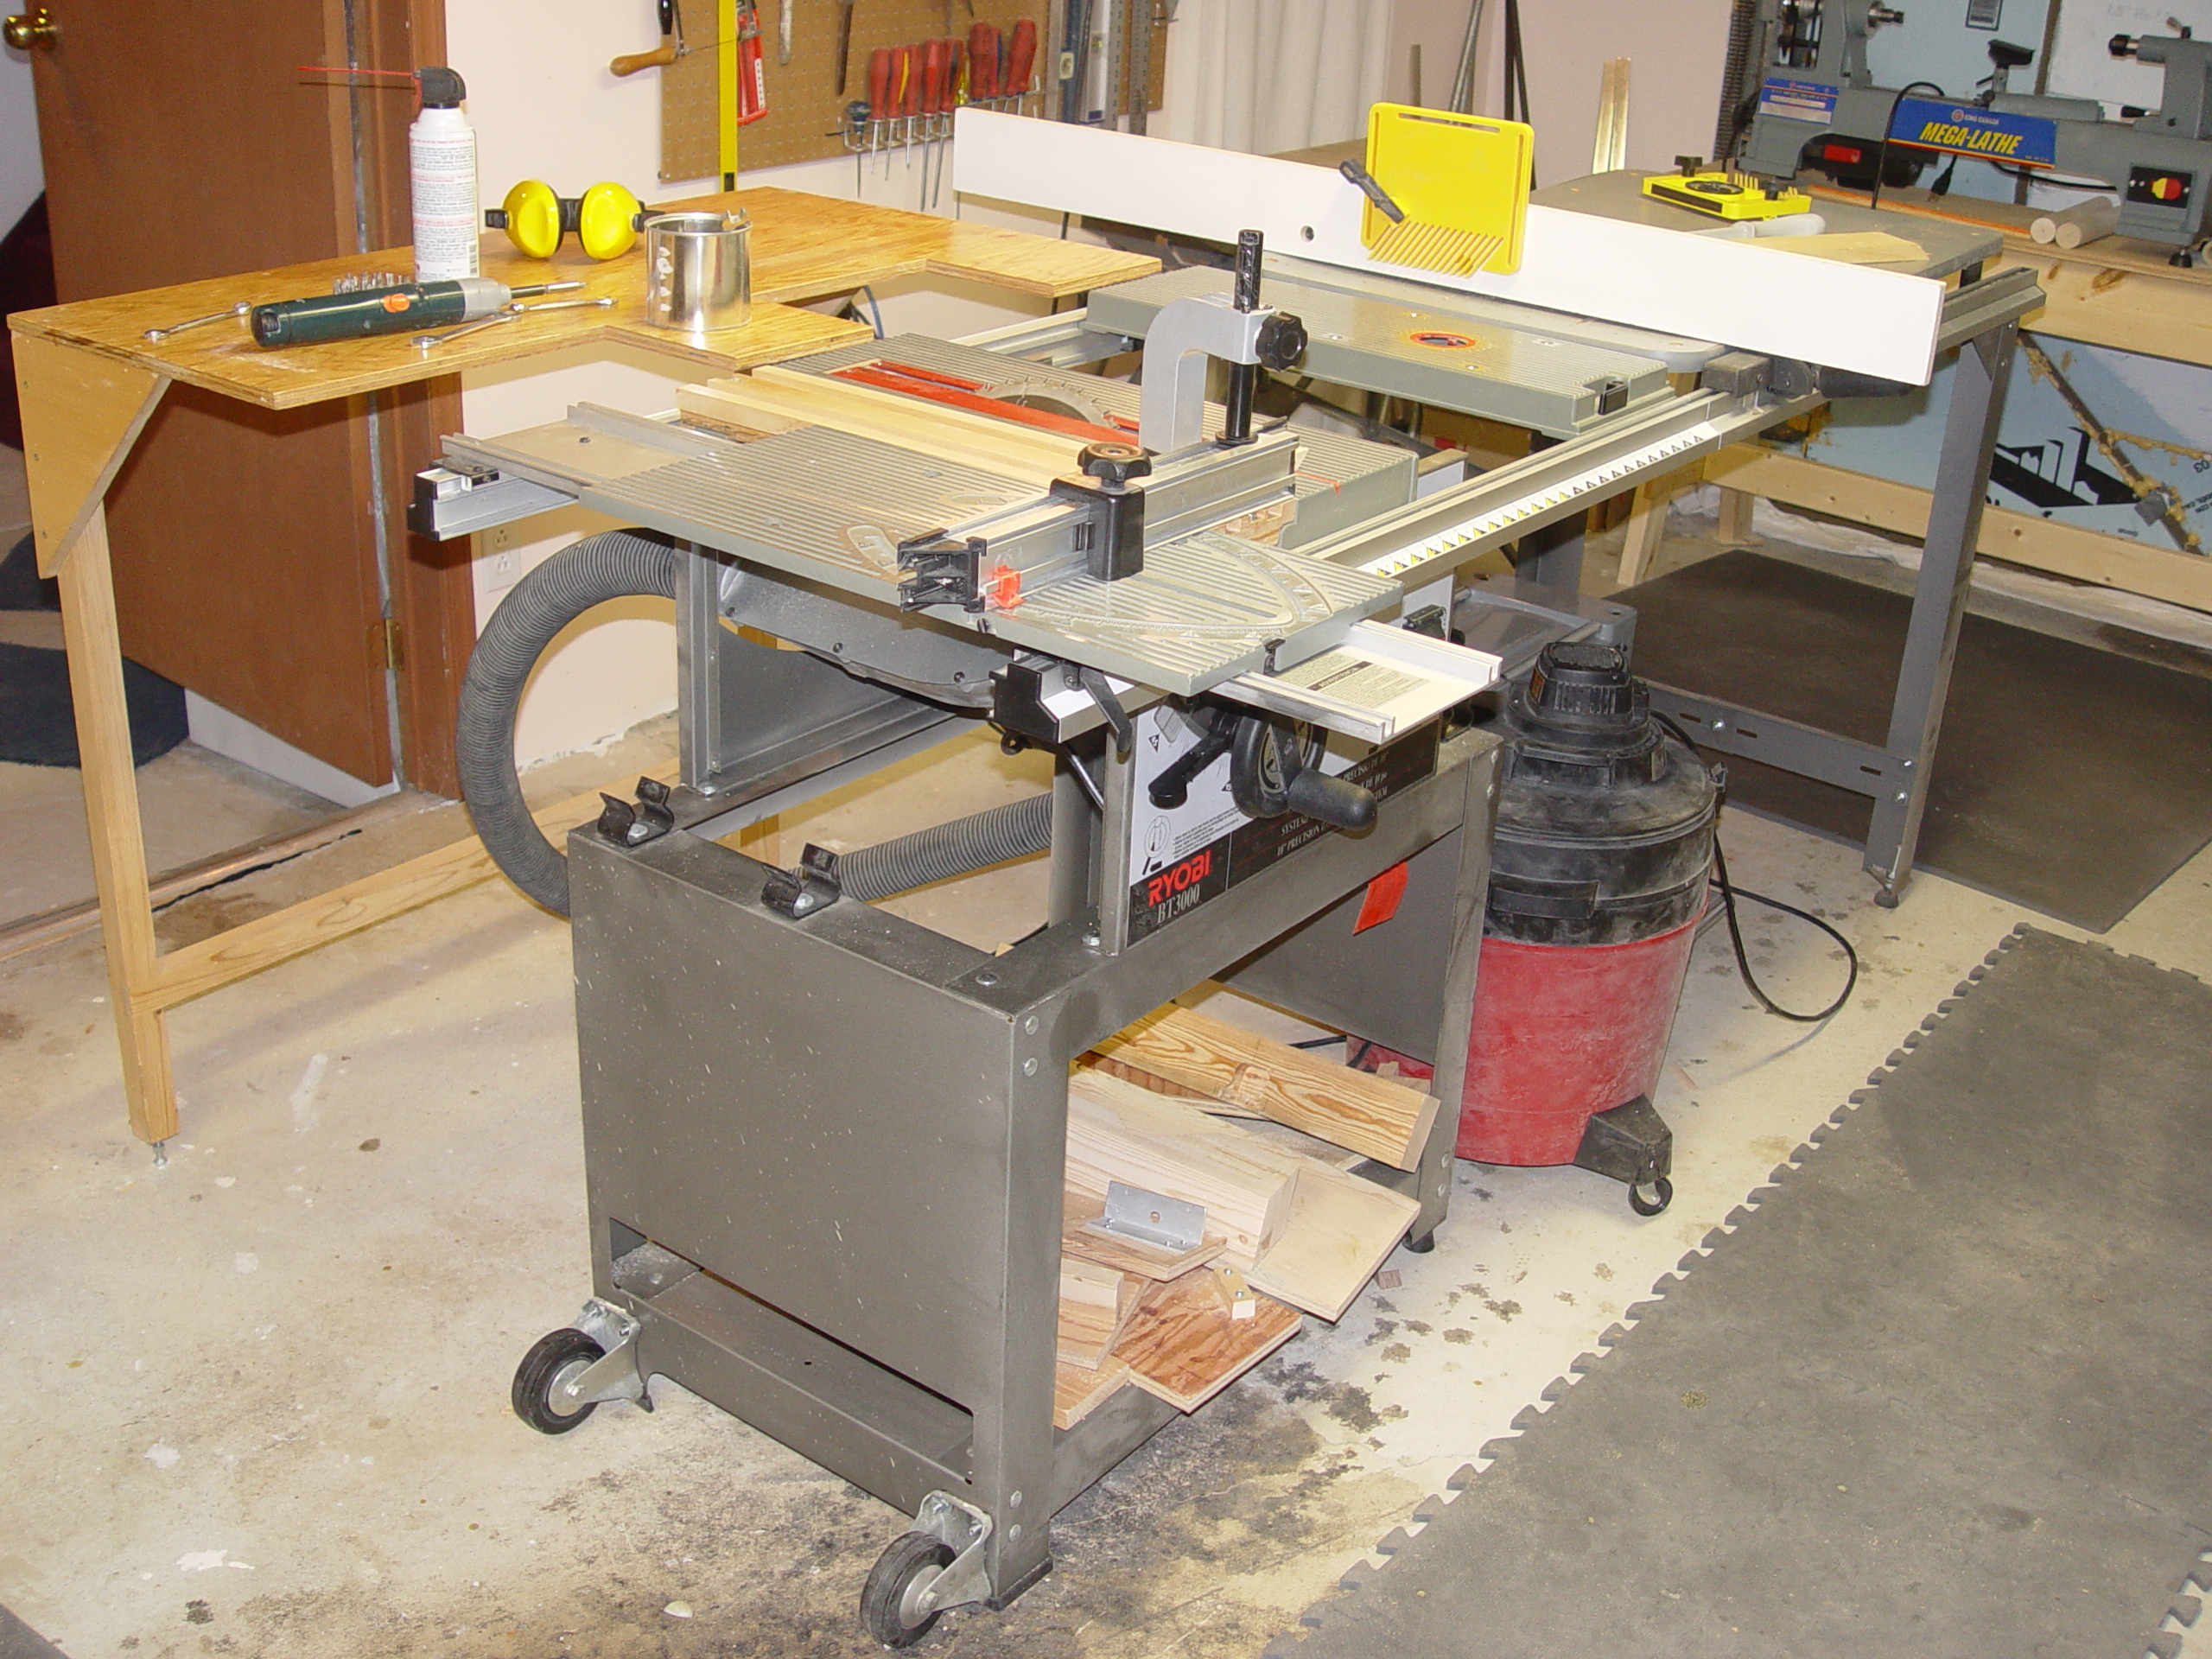 Jewel boxes of bradford products table saw the ryobi bt3000sx table saw has a greentooth